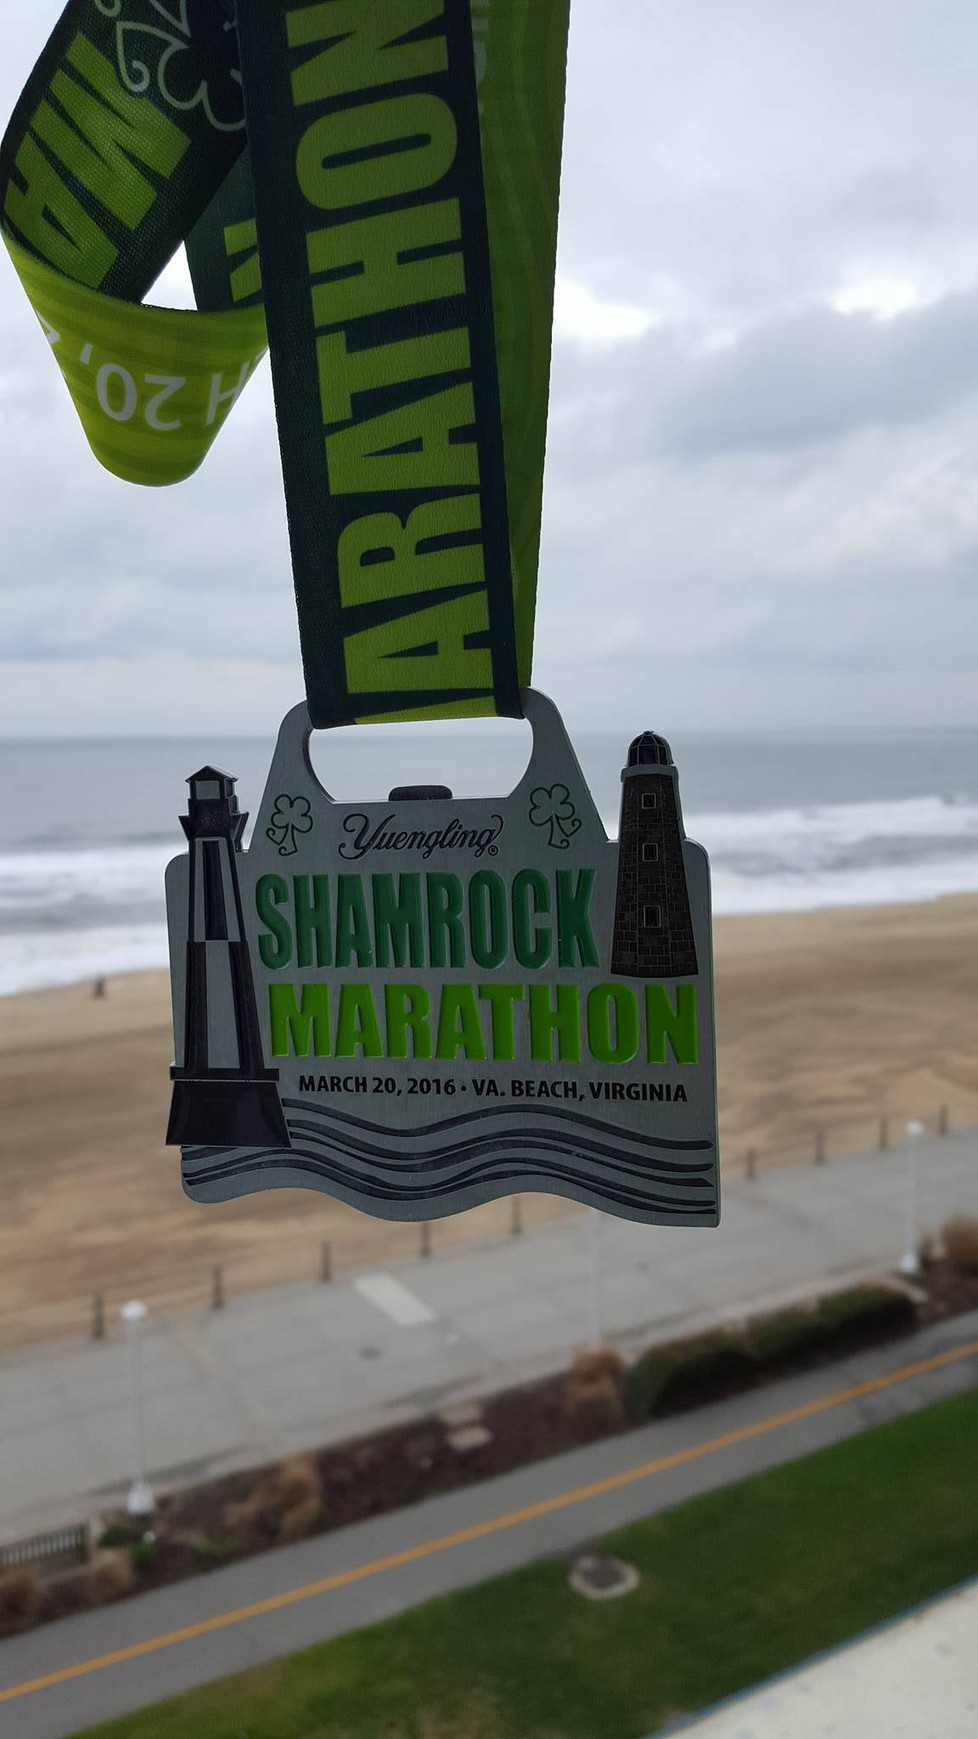 March 2016 - Yuengling Shamrock Marathon